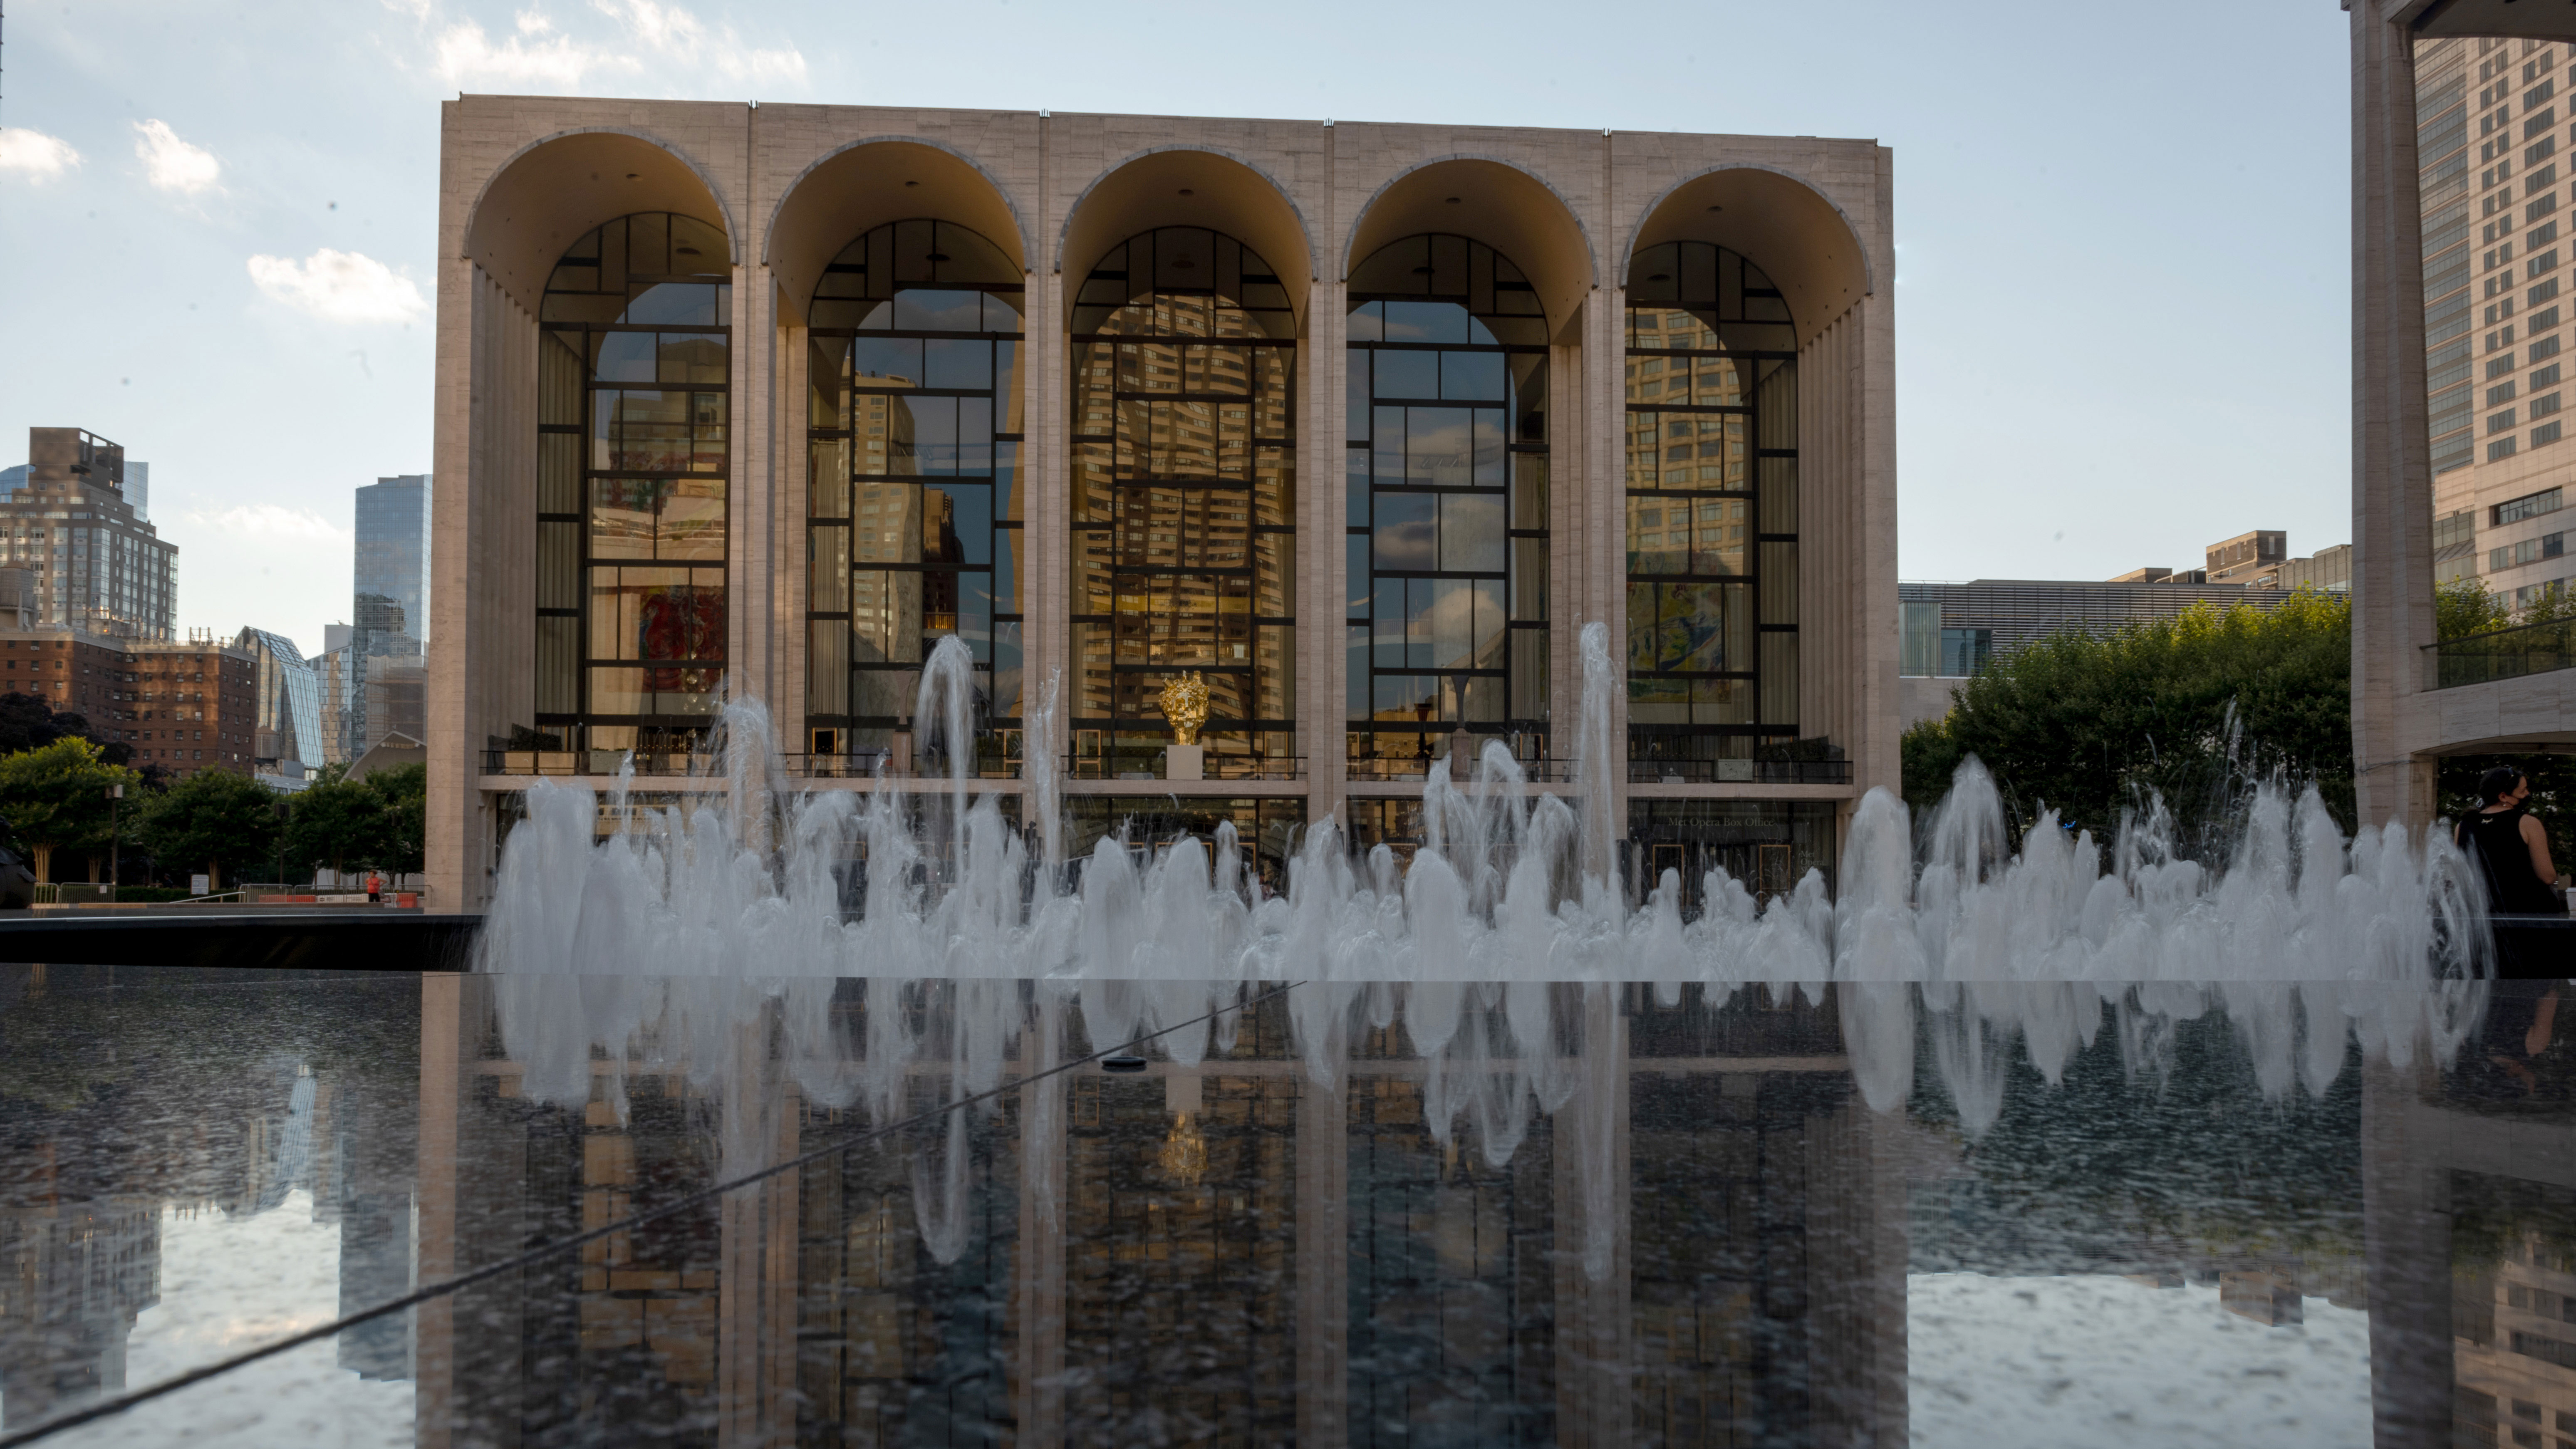 The Metropolitan Opera House in New York is pictured on July 13.